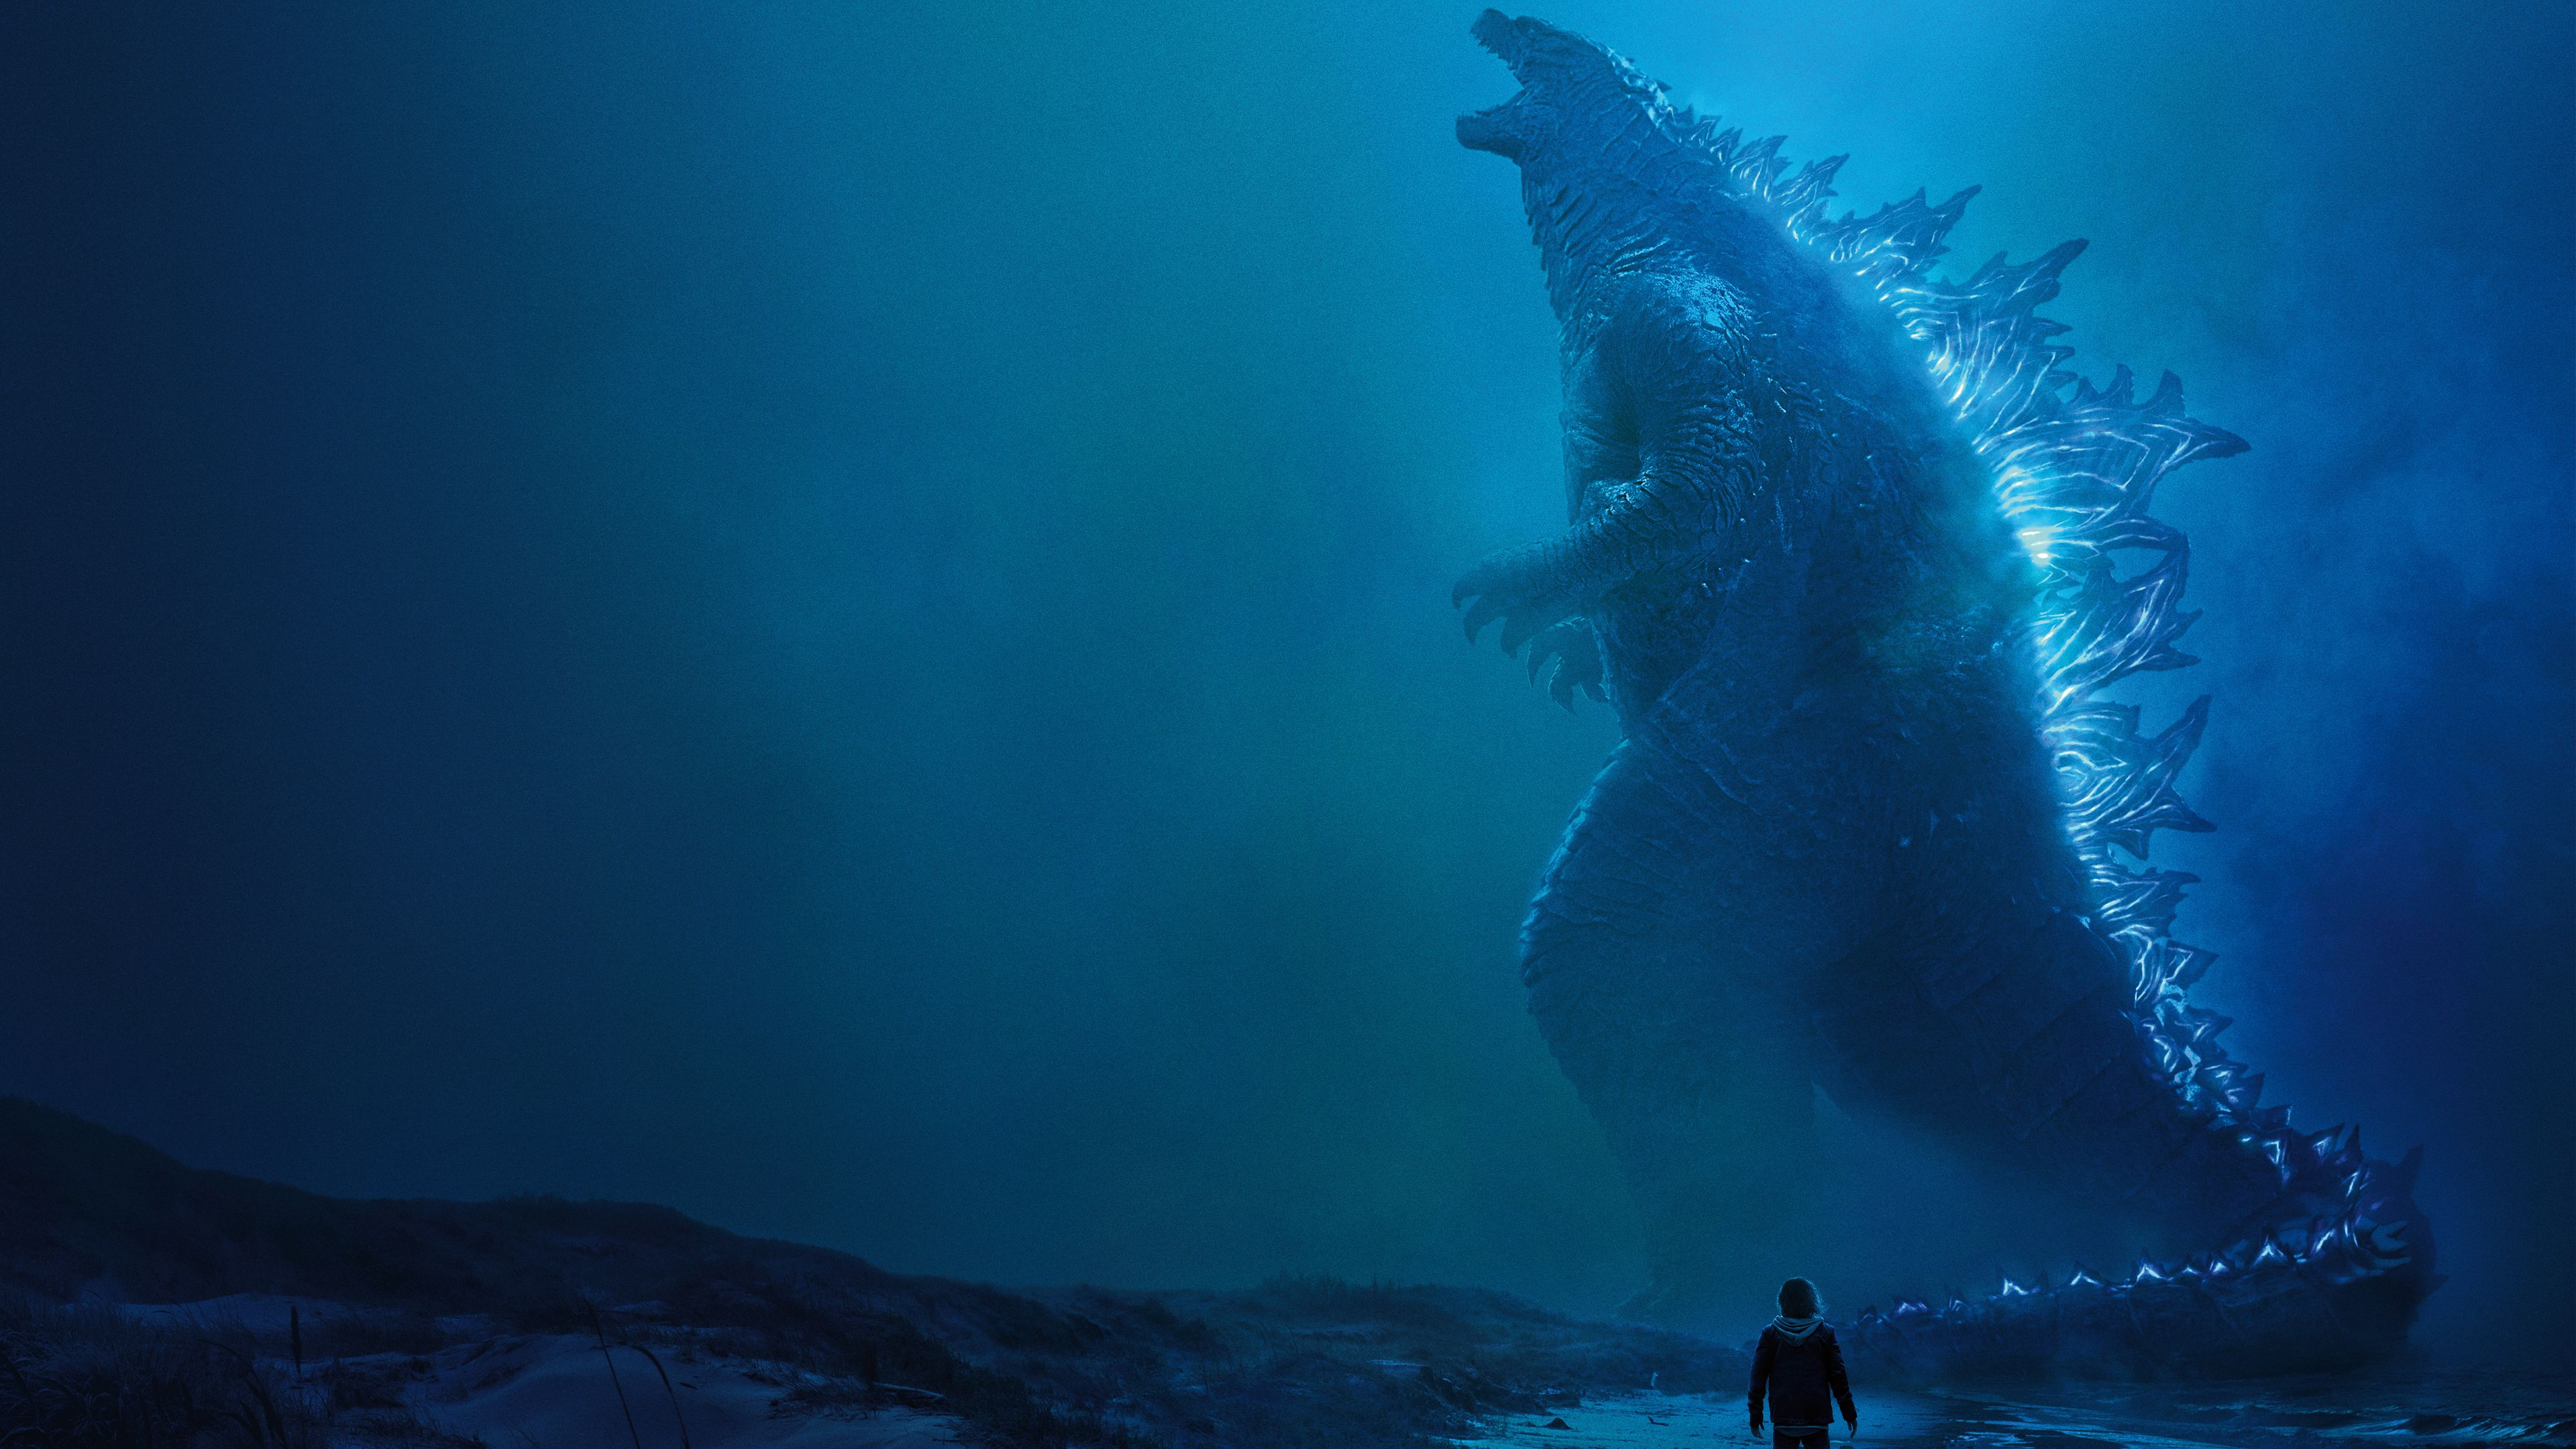 Godzilla King Of The Monsters 4k Poster Wallpapers Movies Wallpapers Millie Bobby Brown Wallpapers Hd Wallpapers Movie Monsters Godzilla Wallpaper Godzilla